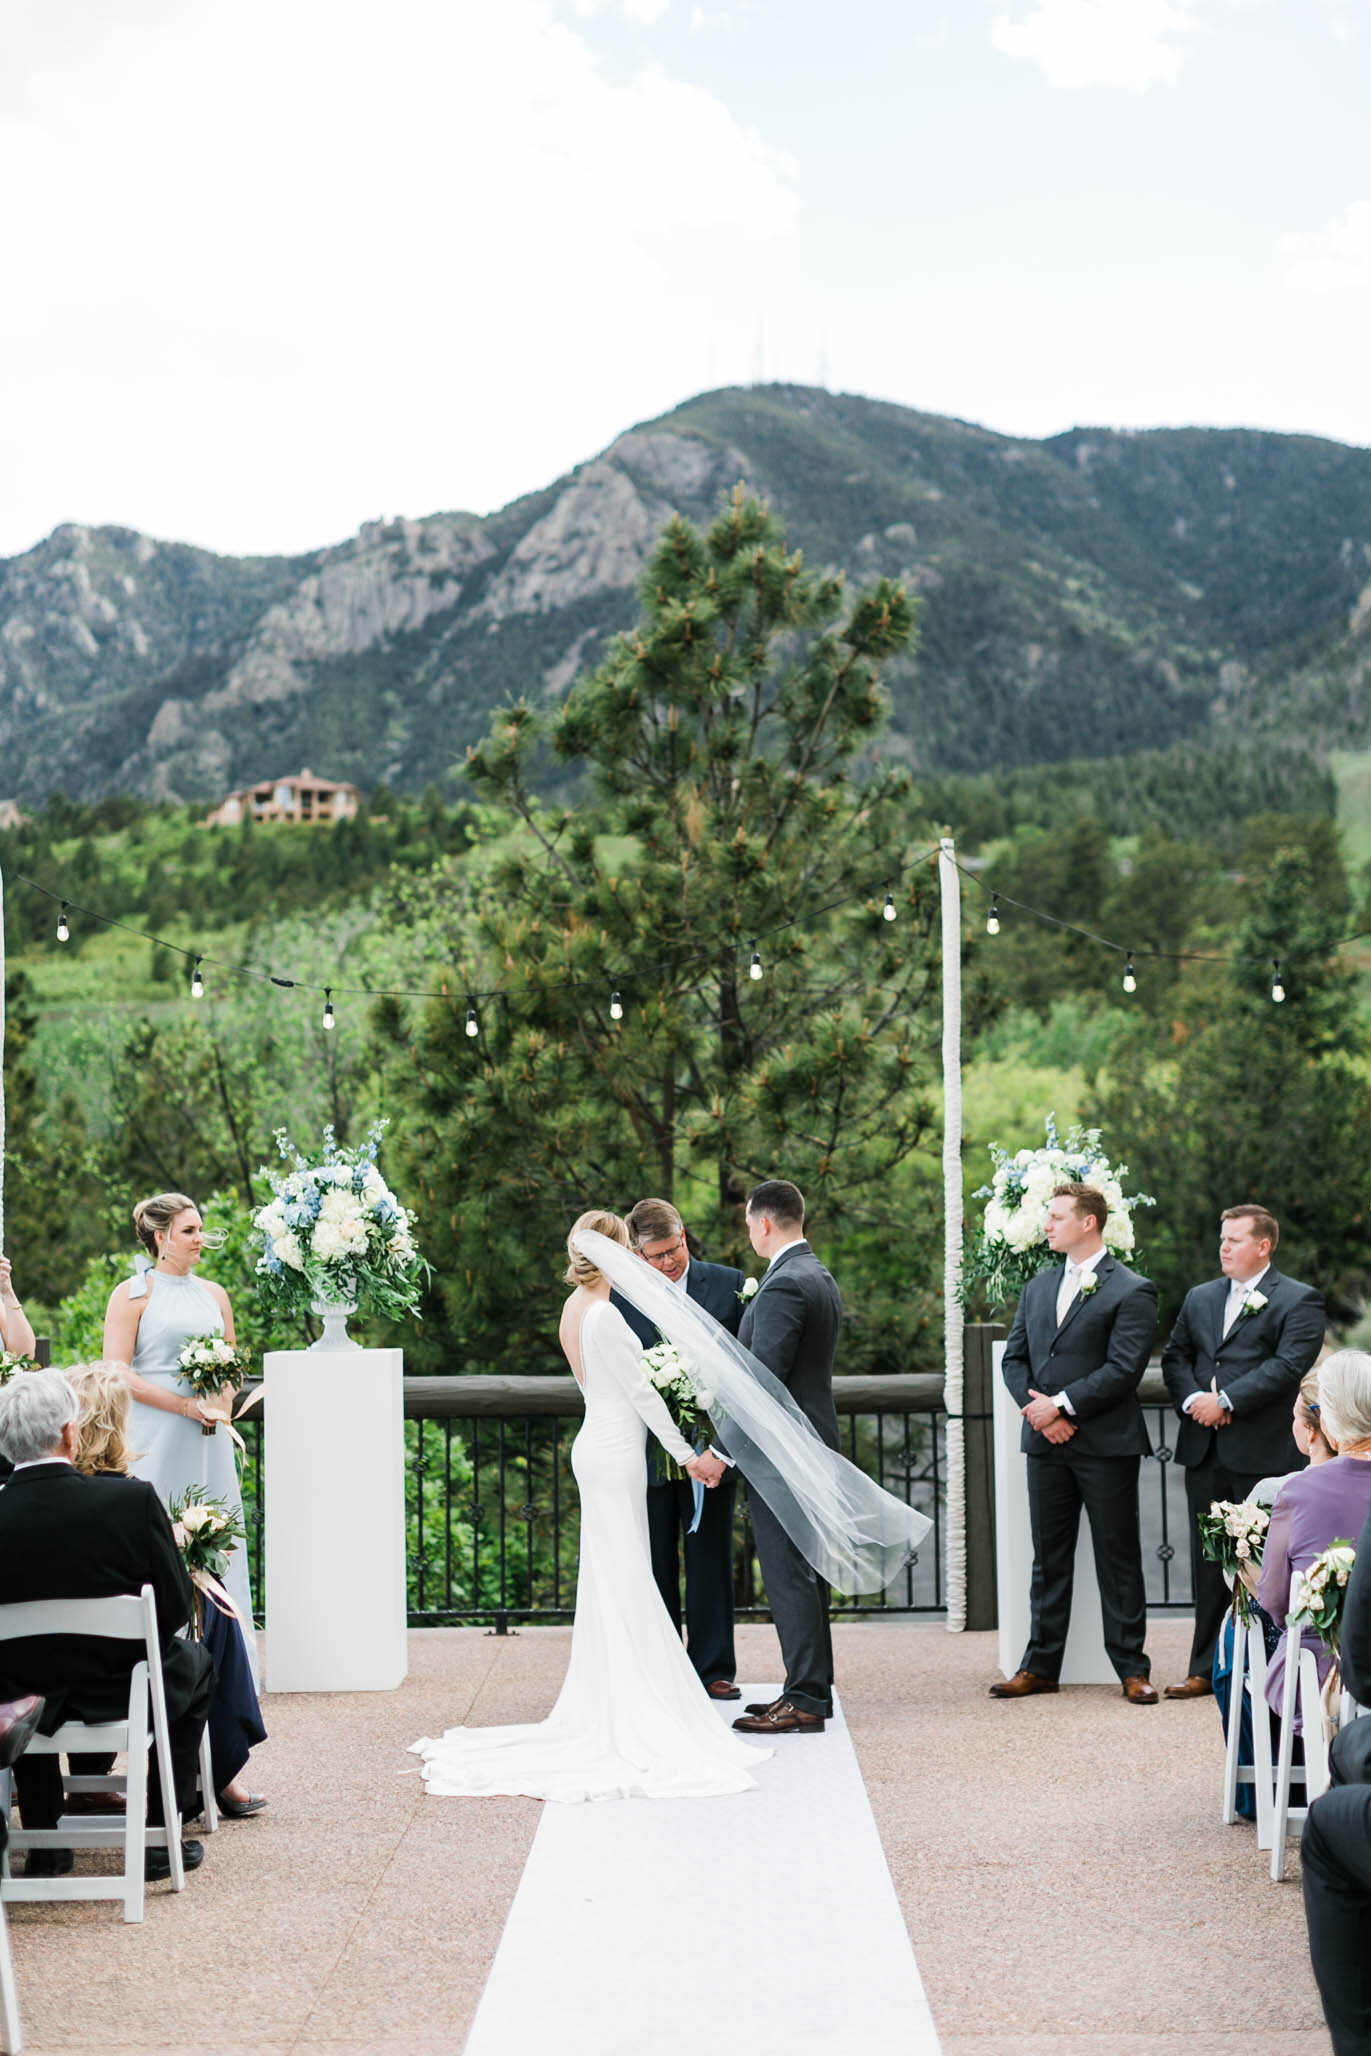 The mountainous backdrop was as breathtaking as their ceremony.